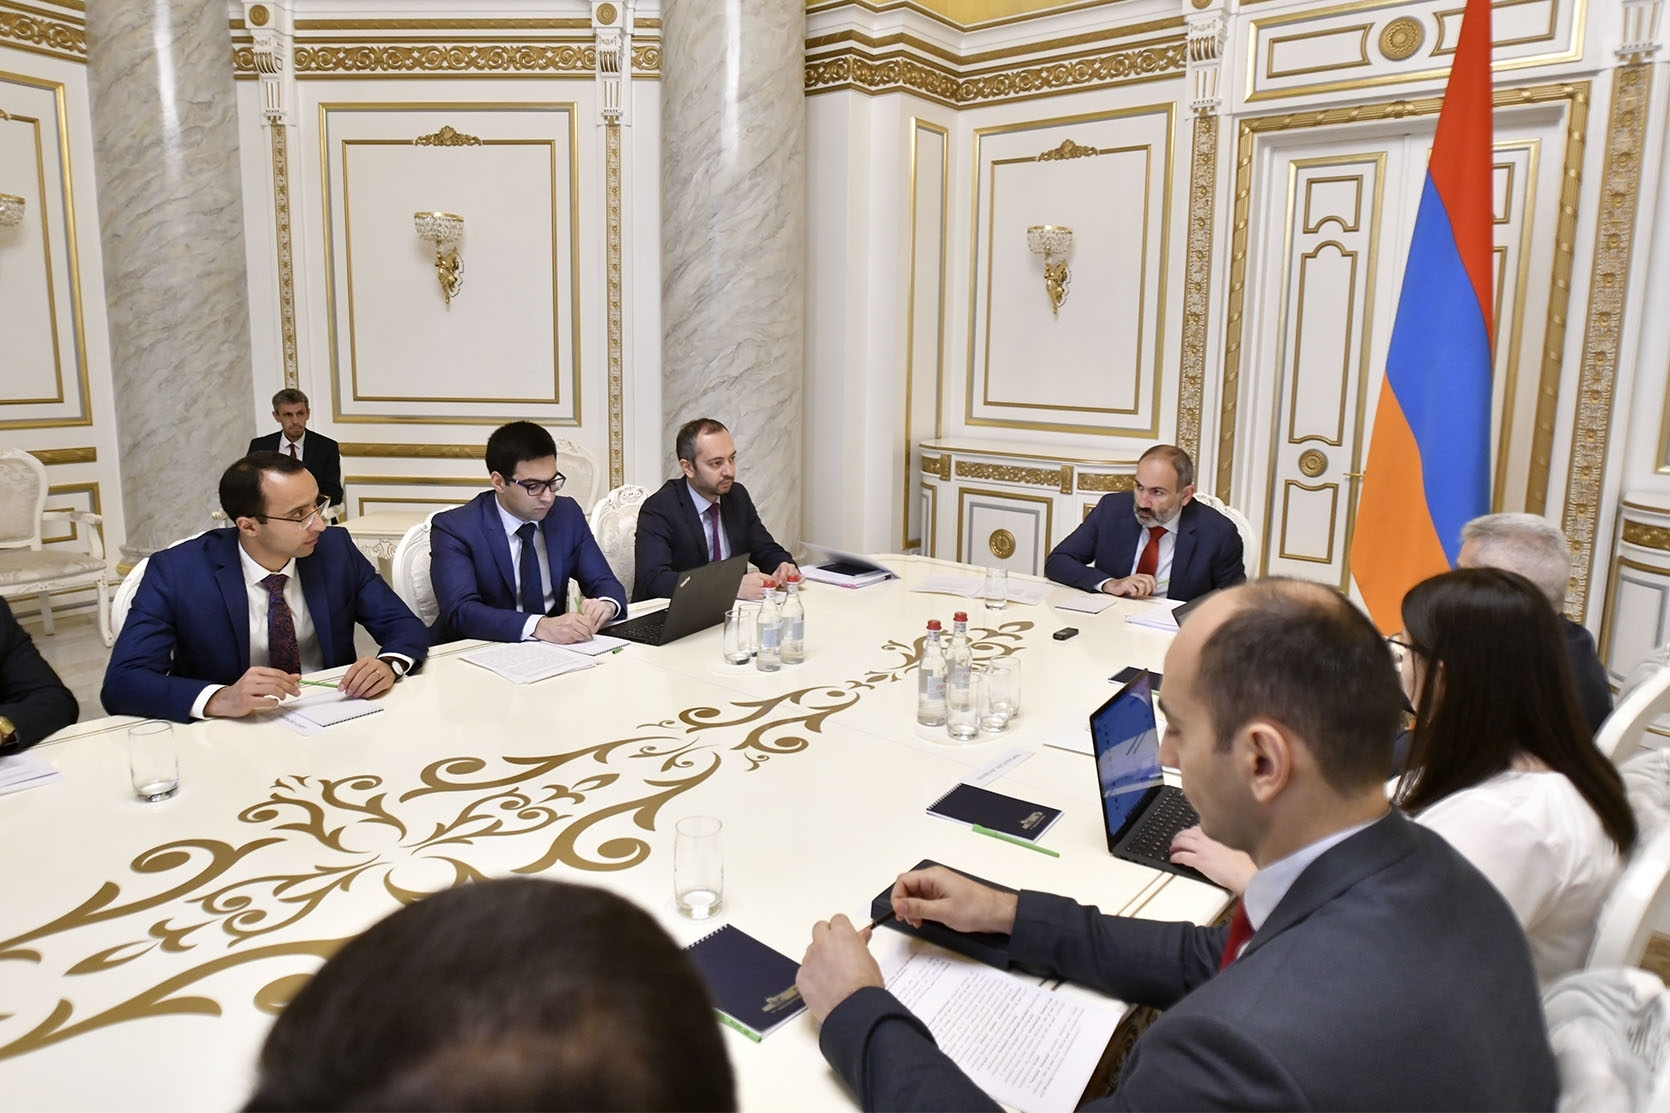 Prime Minister Nikol Pashinyan meets with his cabinet on October 22. Pashinyan has been forced to explain a secret raise for cabinet members. (photo:primeminister.am)